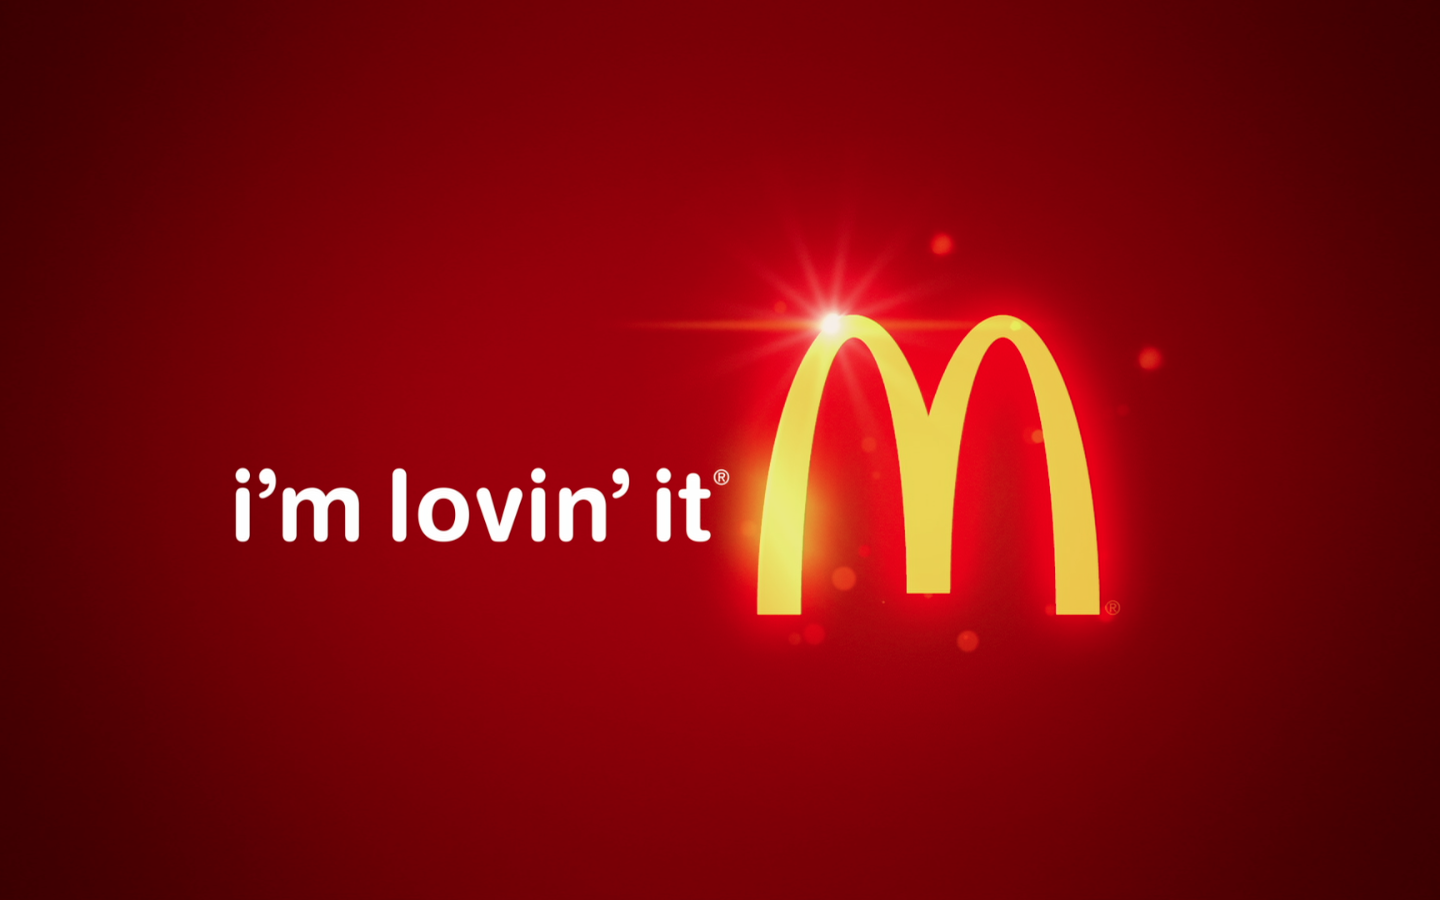 McDonald's Wallpapers